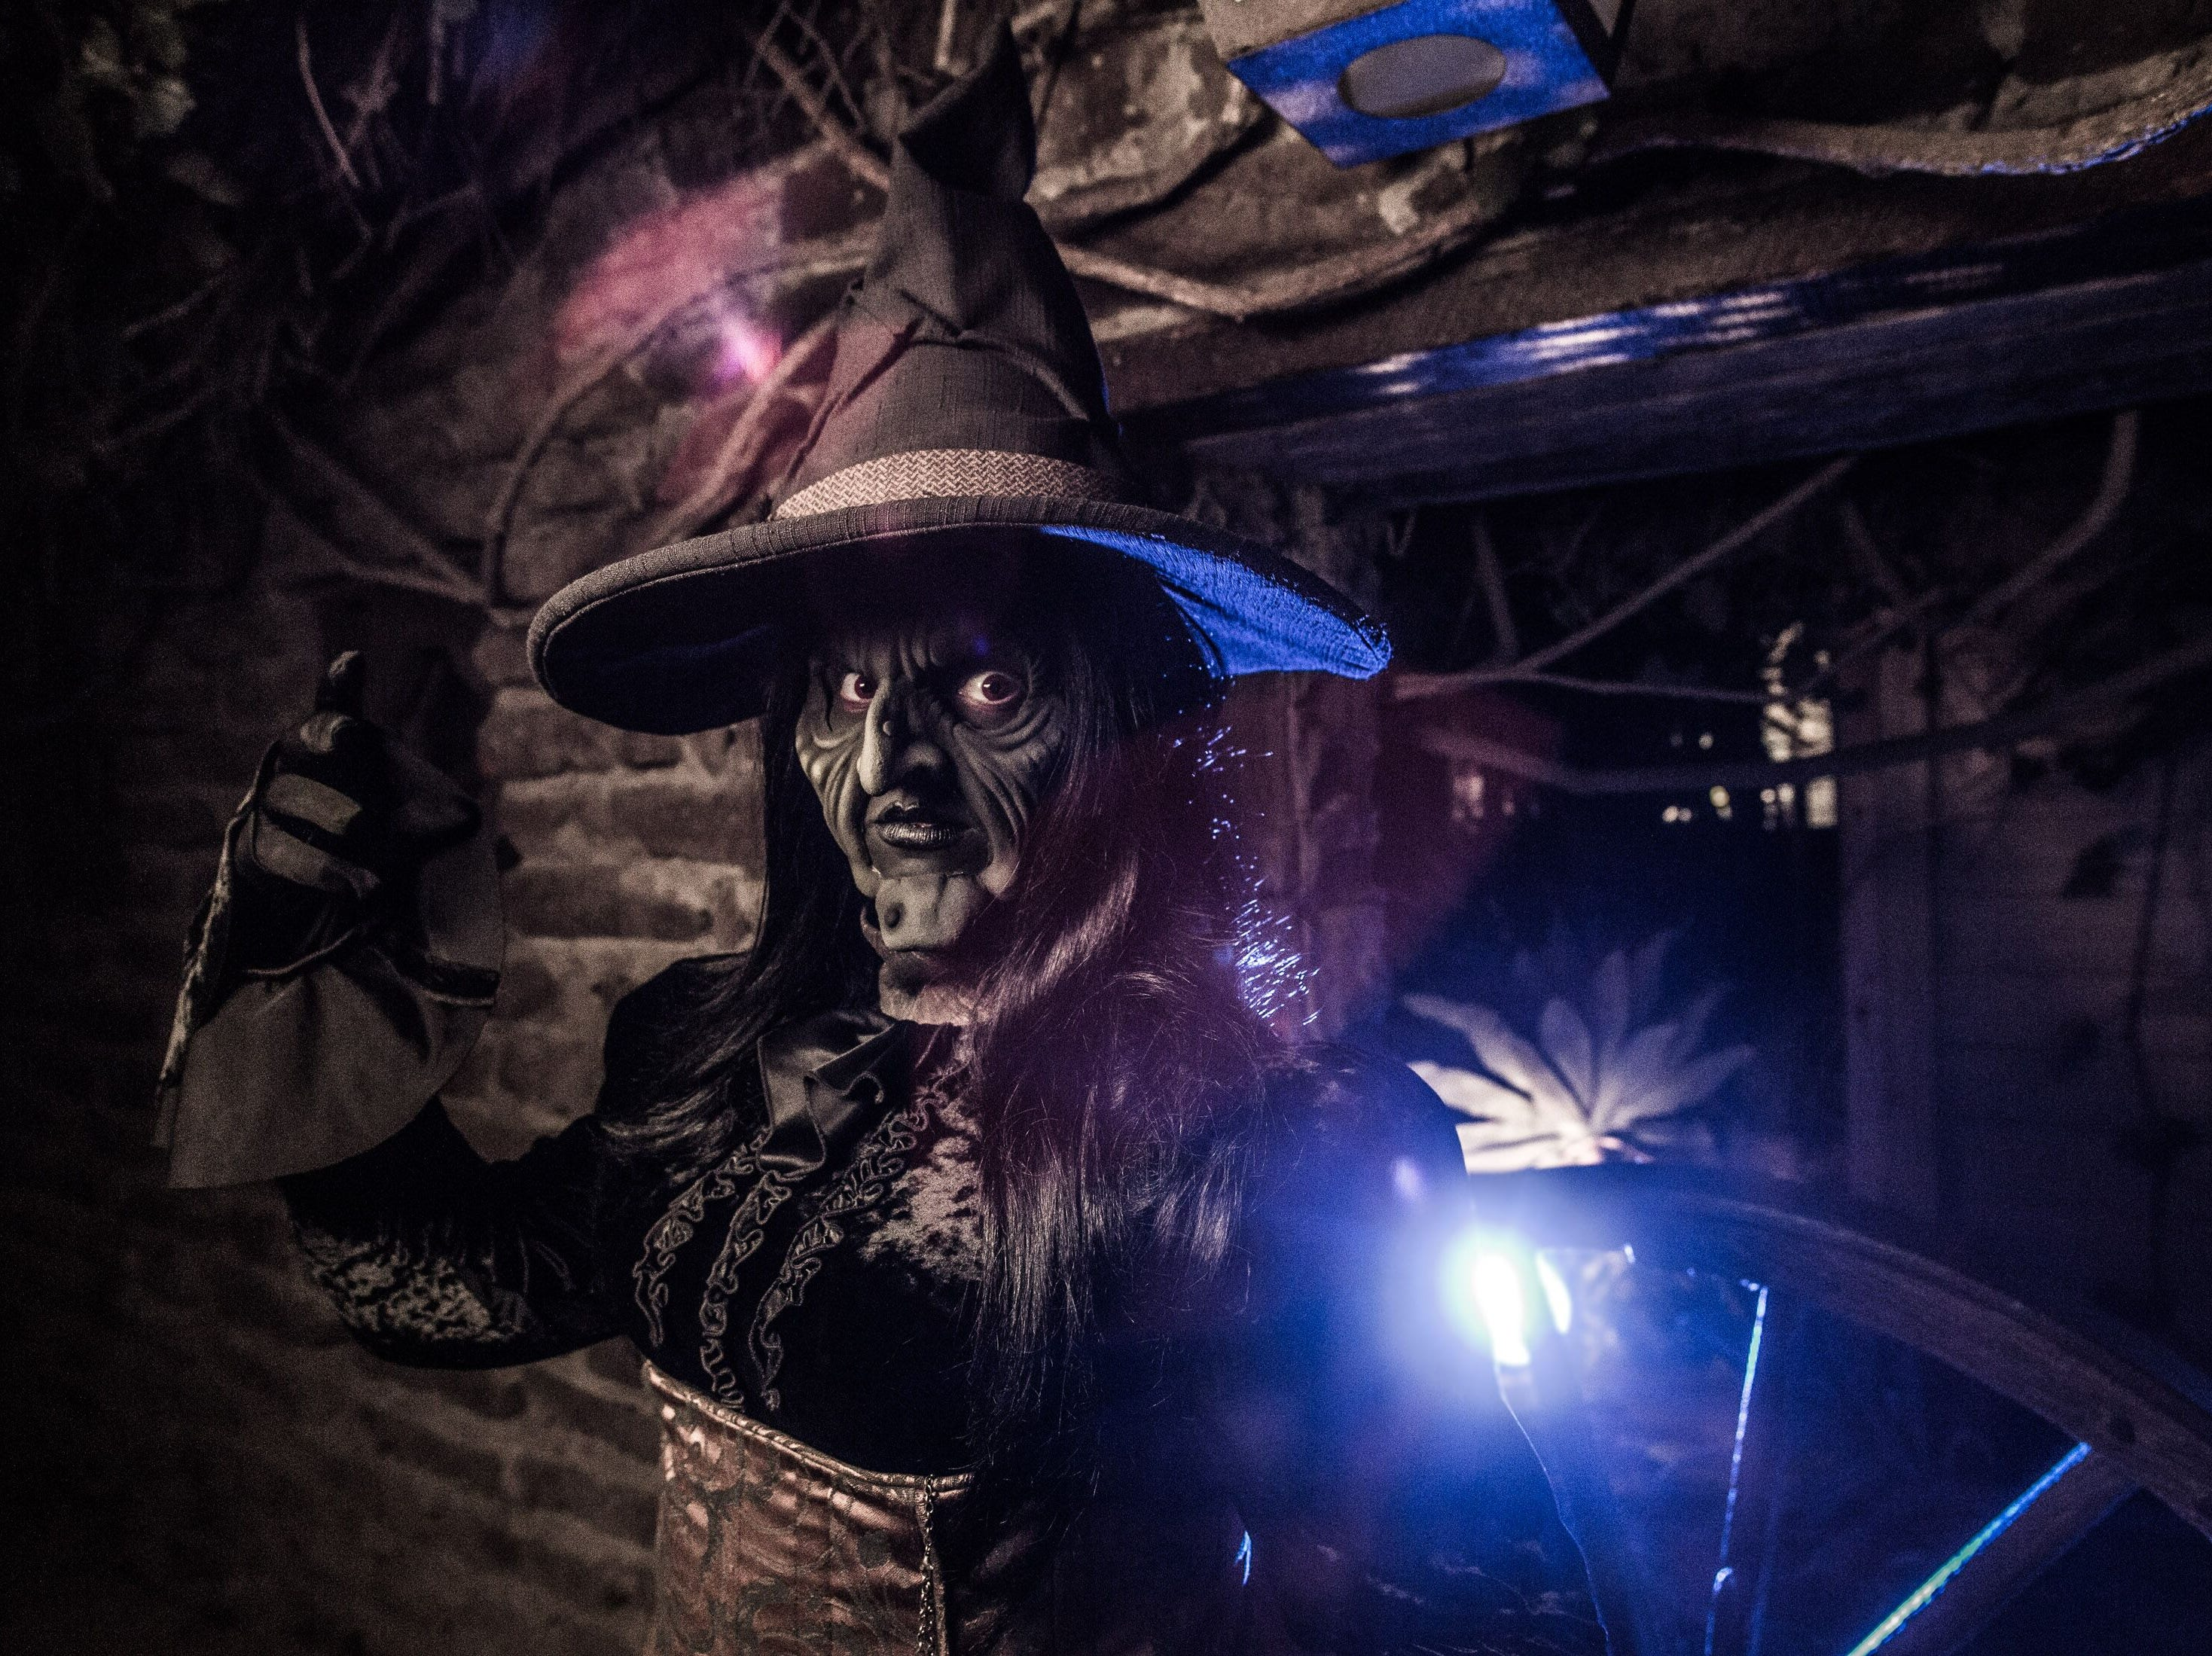 There are no good witches at Knott's Scary Farm,